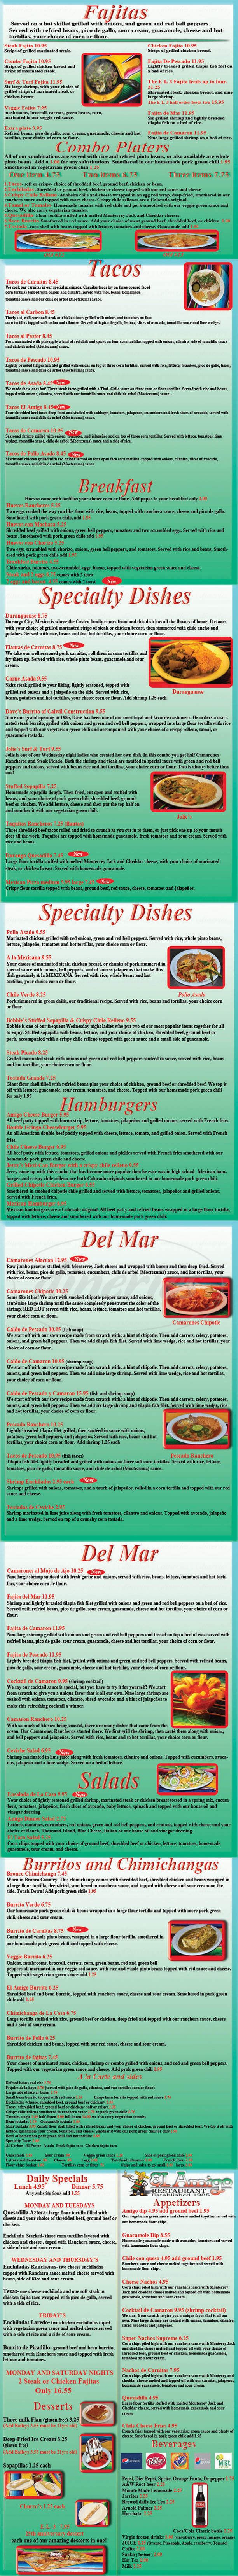 menu for El Amigo Mexican Restaurant